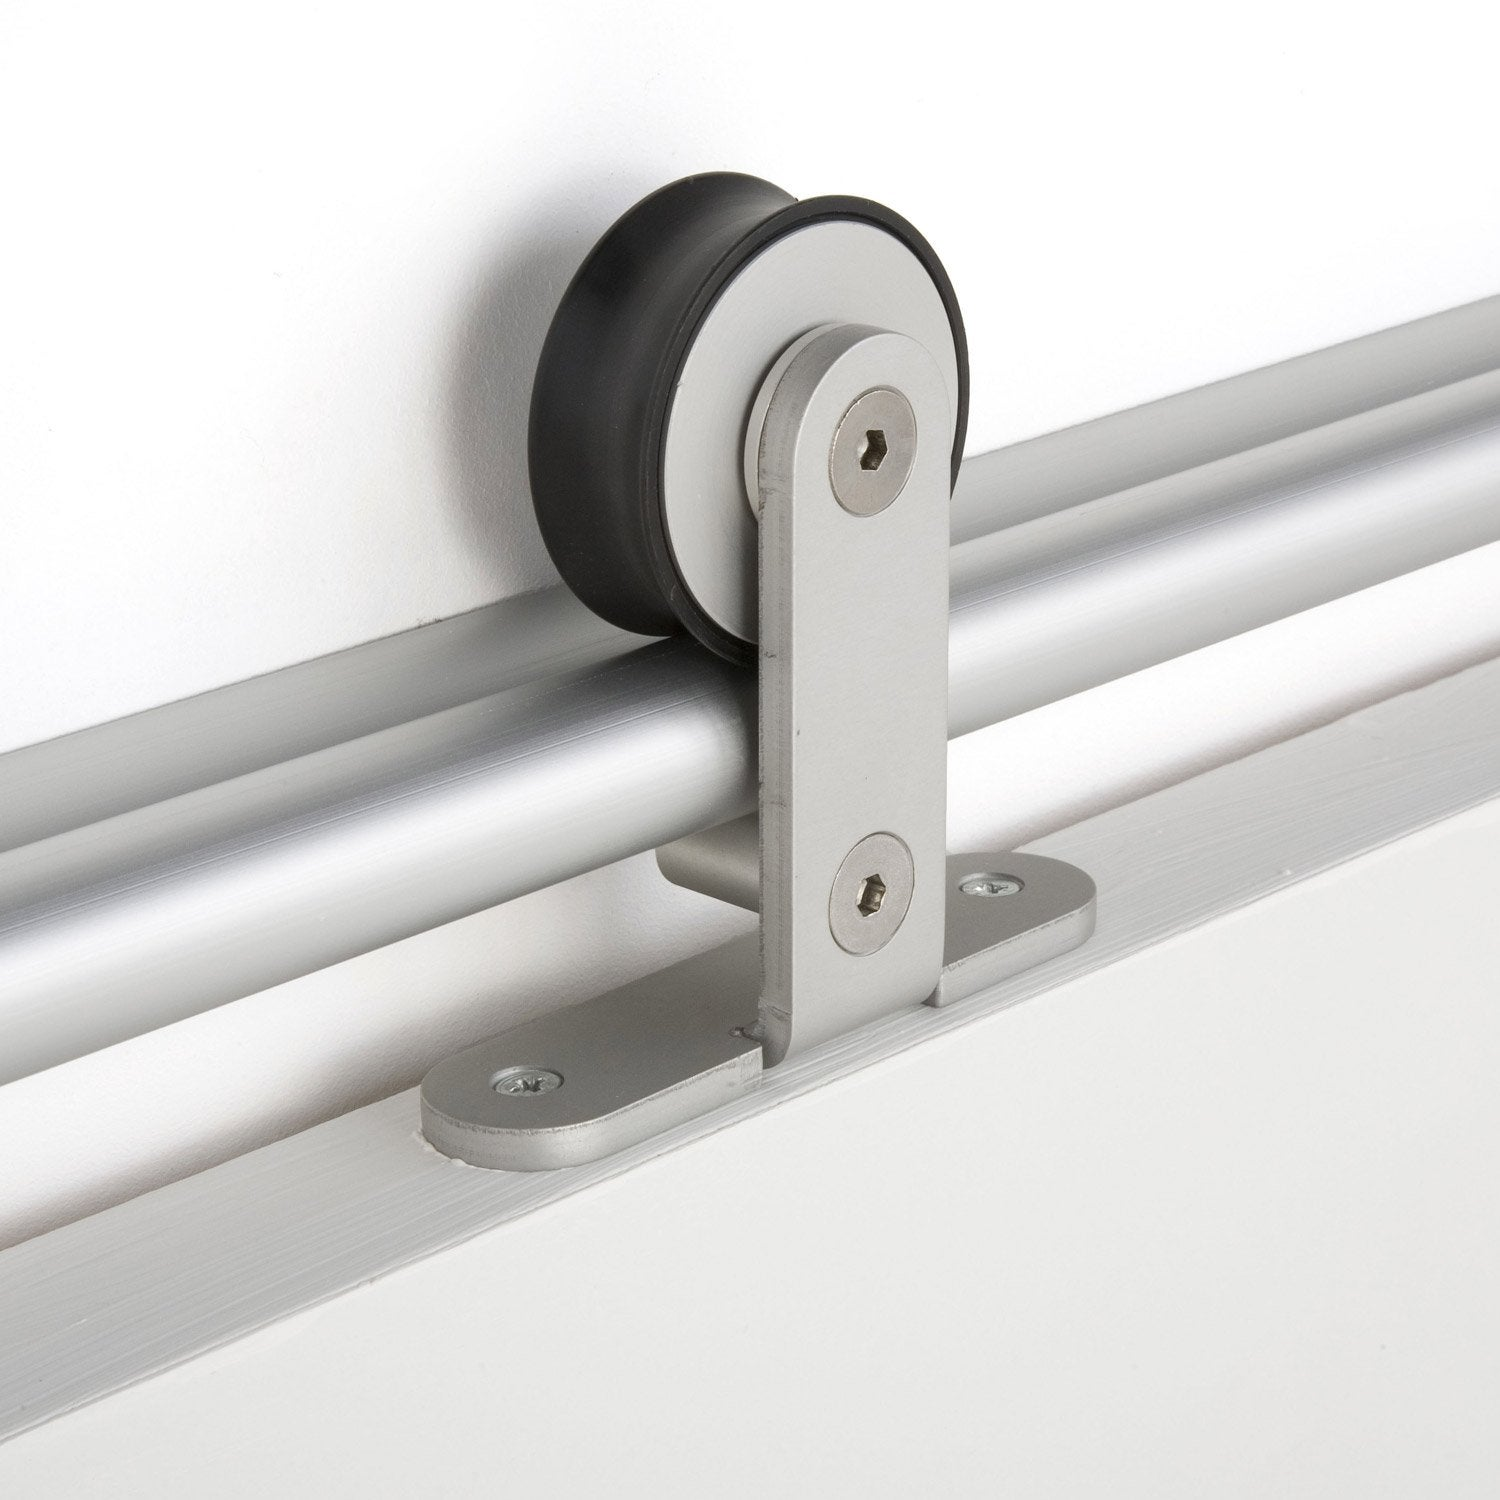 rail coulissant bolero 2 aluminium pour porte de largeur 93 cm maximum leroy merlin